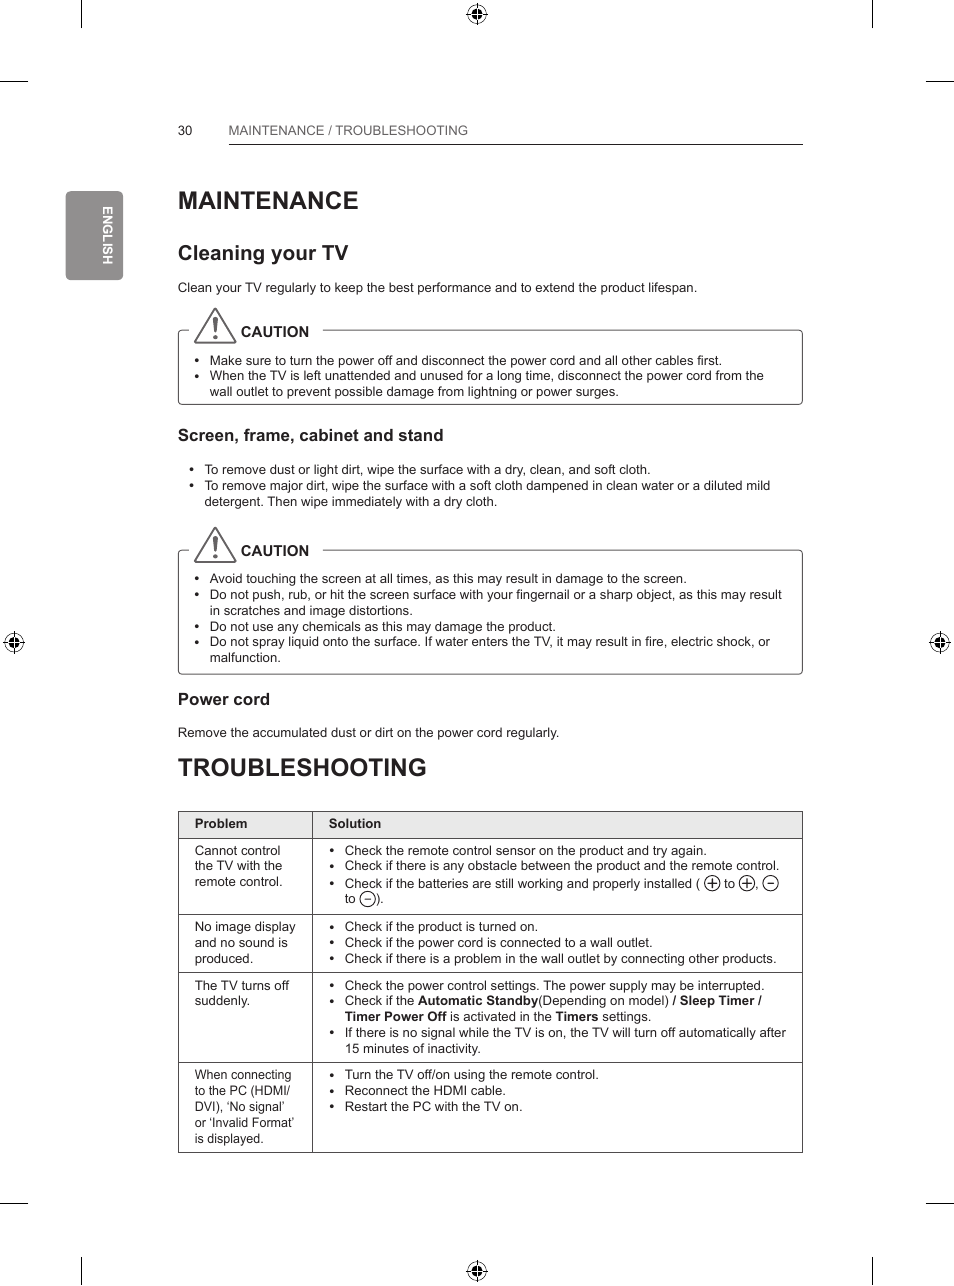 Maintenance, Troubleshooting, Cleaning your tv | LG 55LB700V User